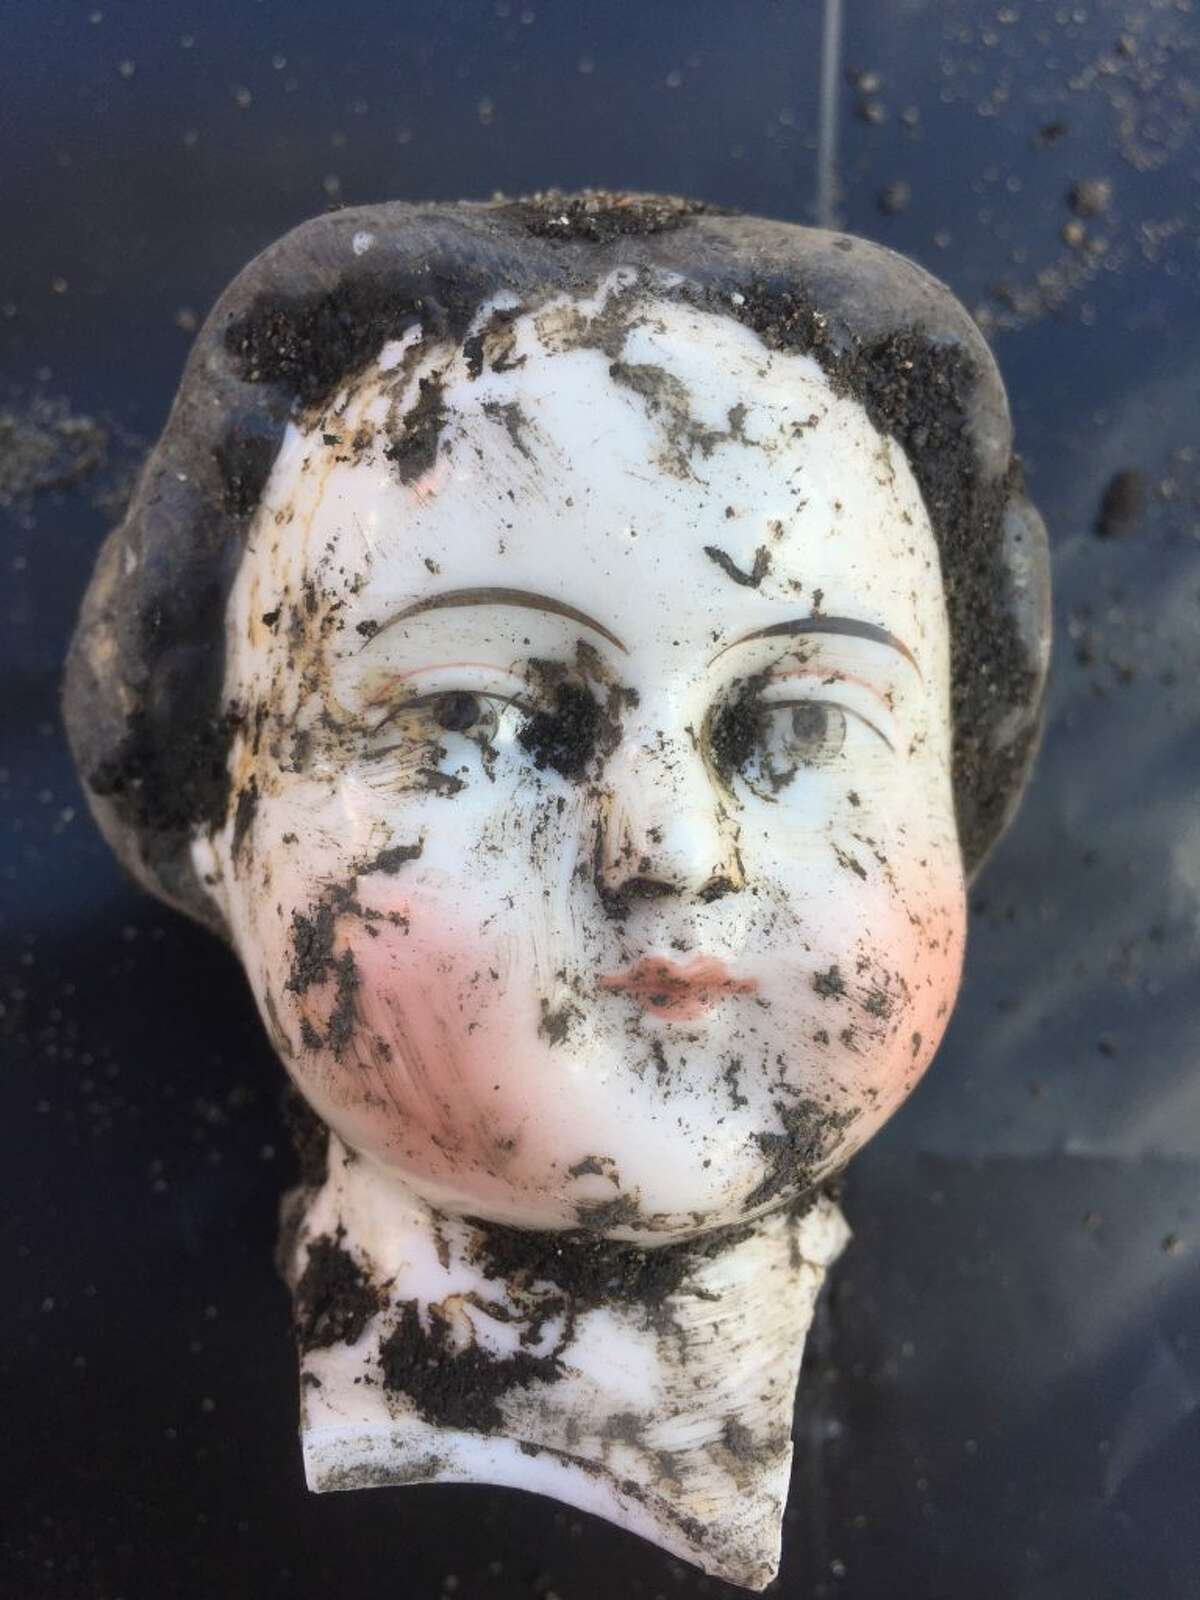 A doll head was one of thousands of artifacts discovered under layers of soil during an affordable housing construction project at the Embarcadero waterfront.